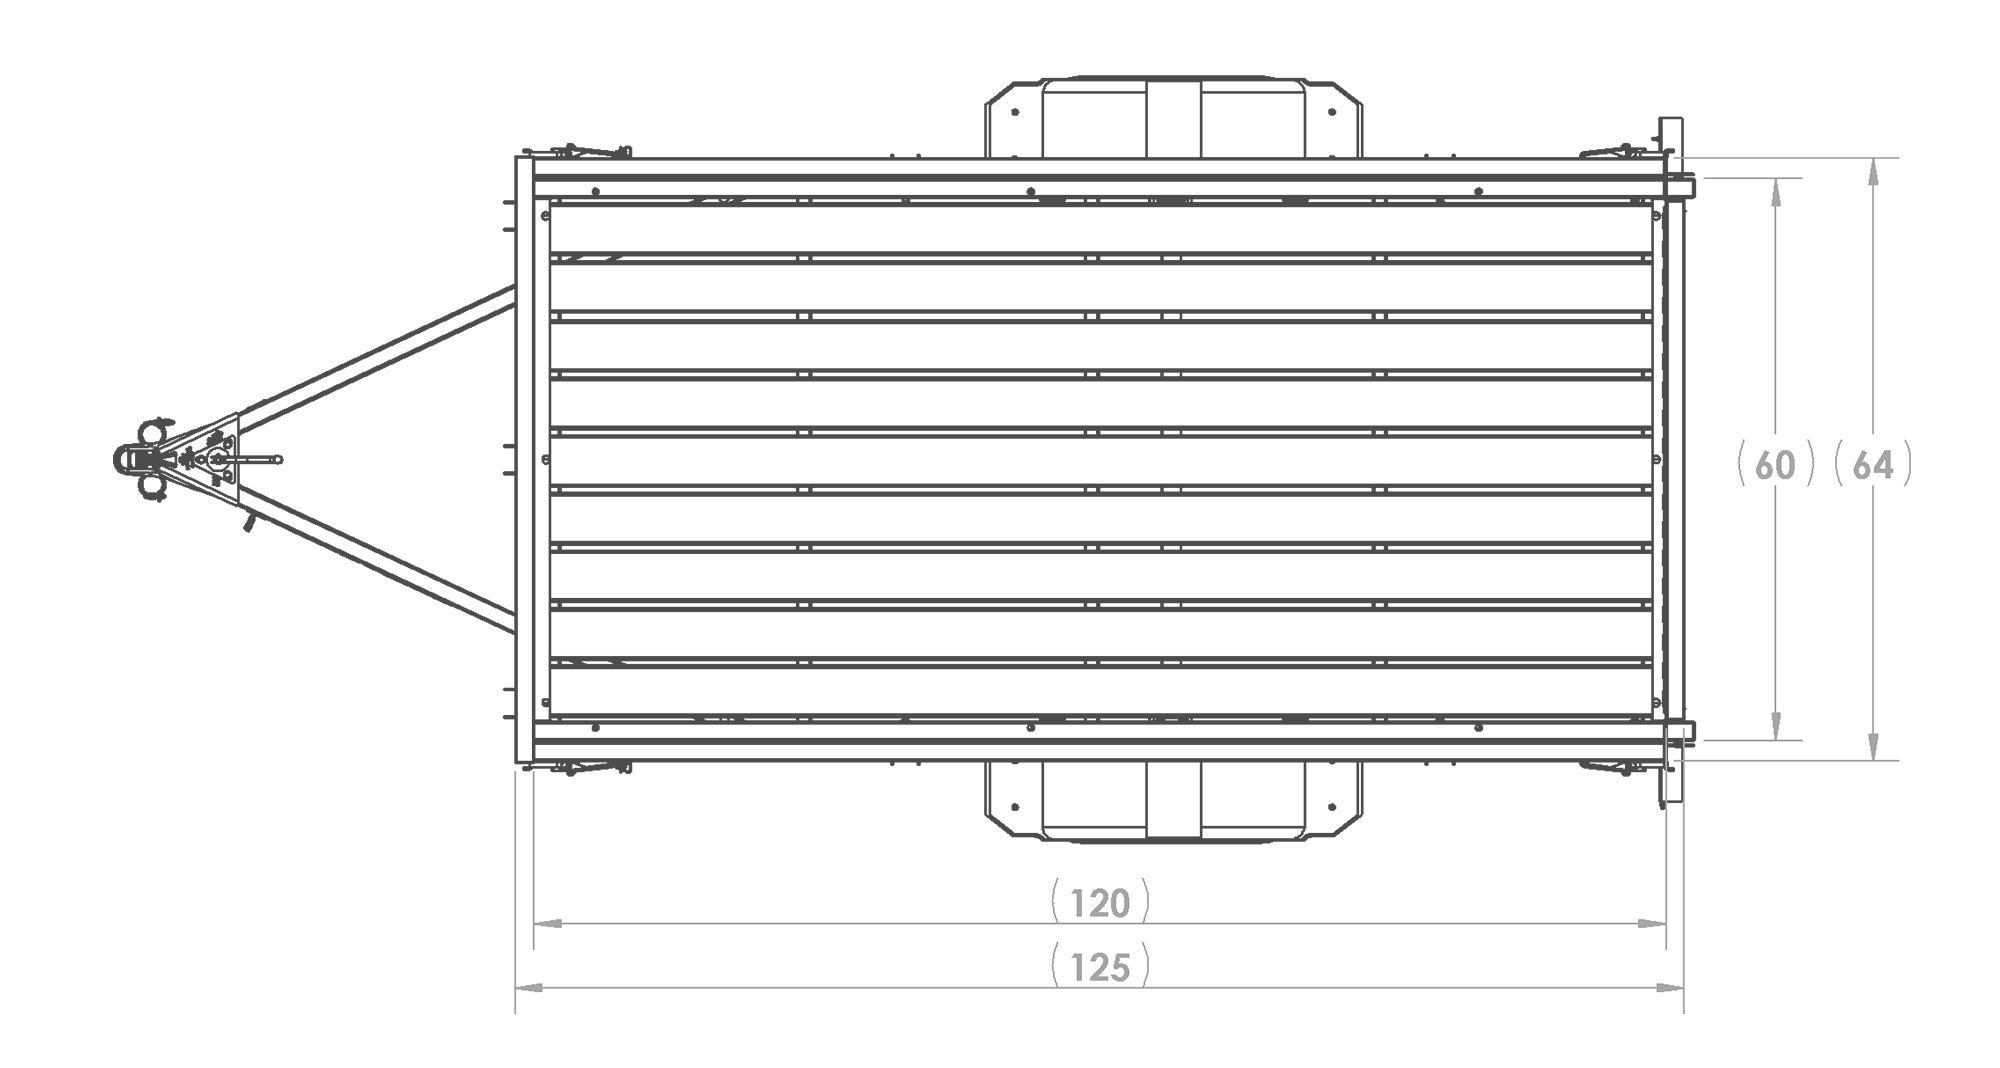 Karavan Trailer's 5 x 10 Steel Utility Trailer, model number 2990-60-10-LR, Top View Measurements